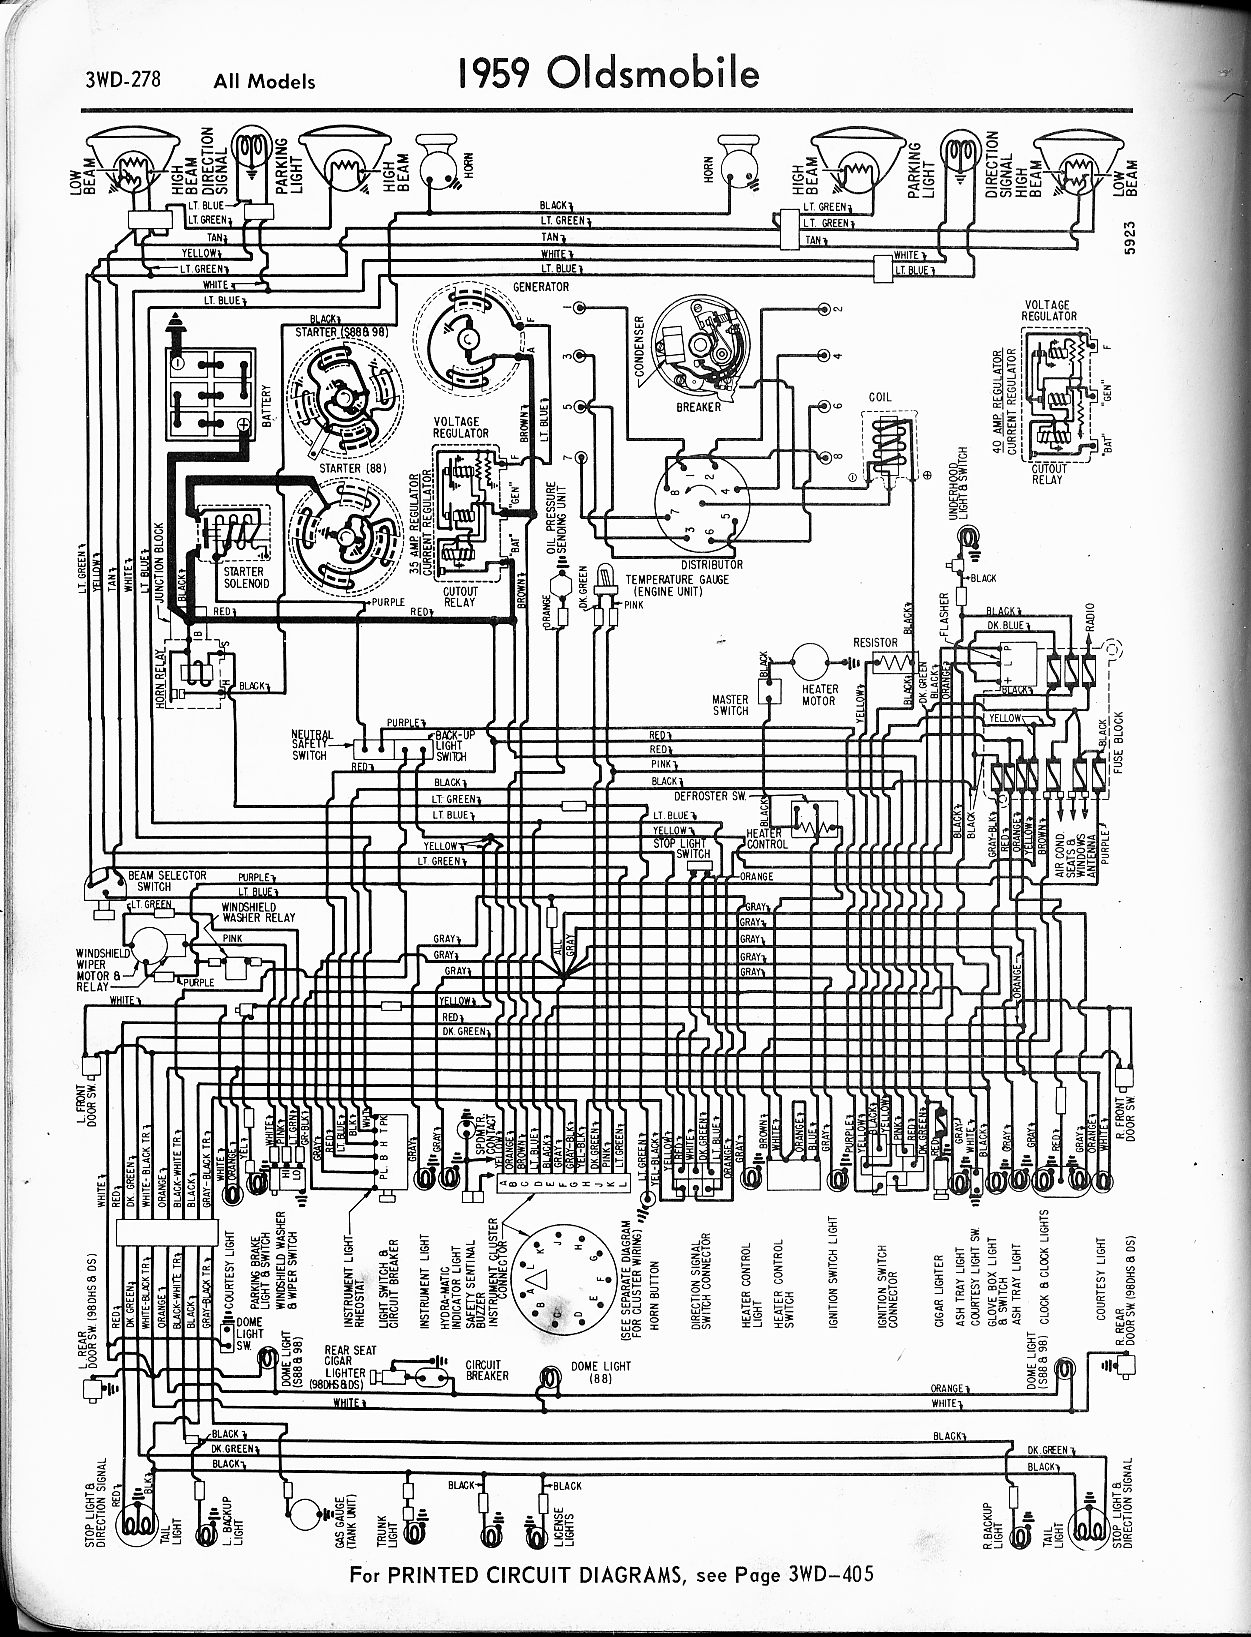 1990 Olds 88 Wiring Diagram Layout Diagrams Old Style Fuse Box Oldsmobile The Car Manual Project Rh Oldcarmanualproject Com 1989 Fe3 Achieva